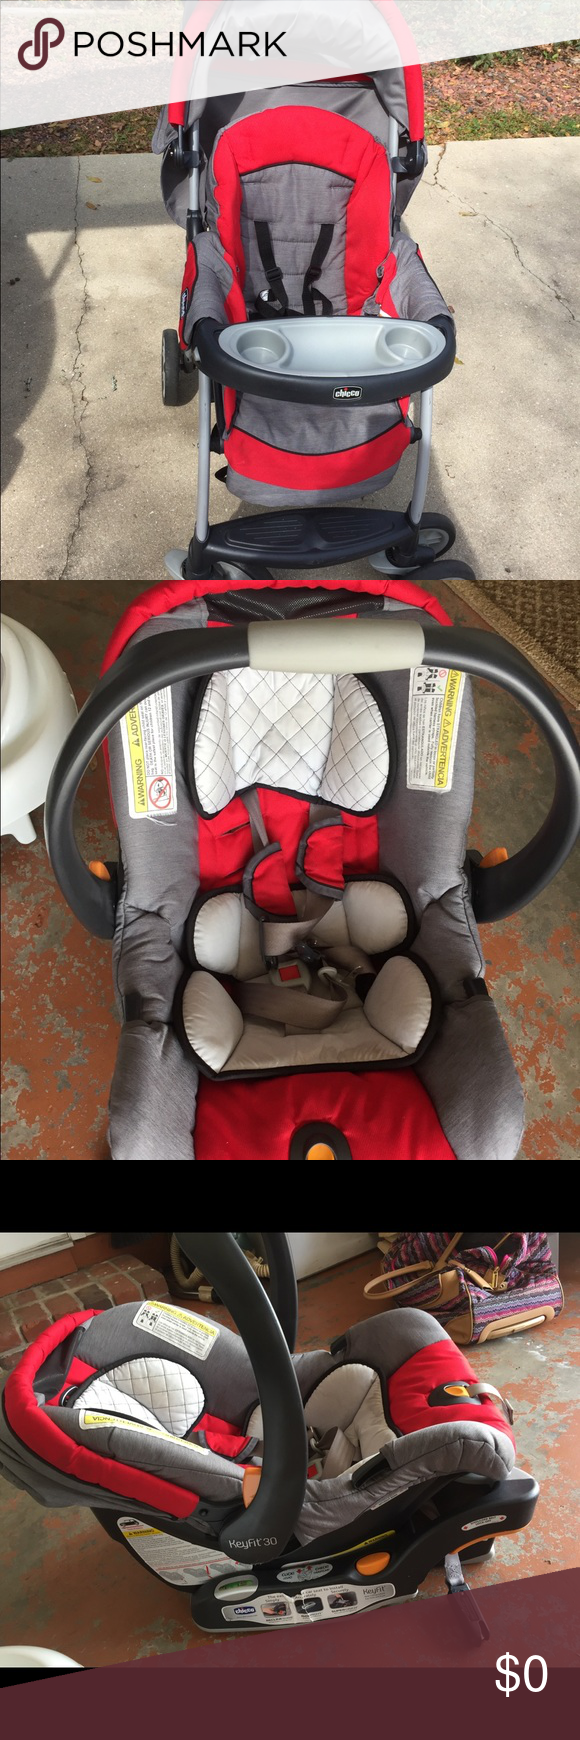 Car seat and stroller Car seats, Car seat and stroller